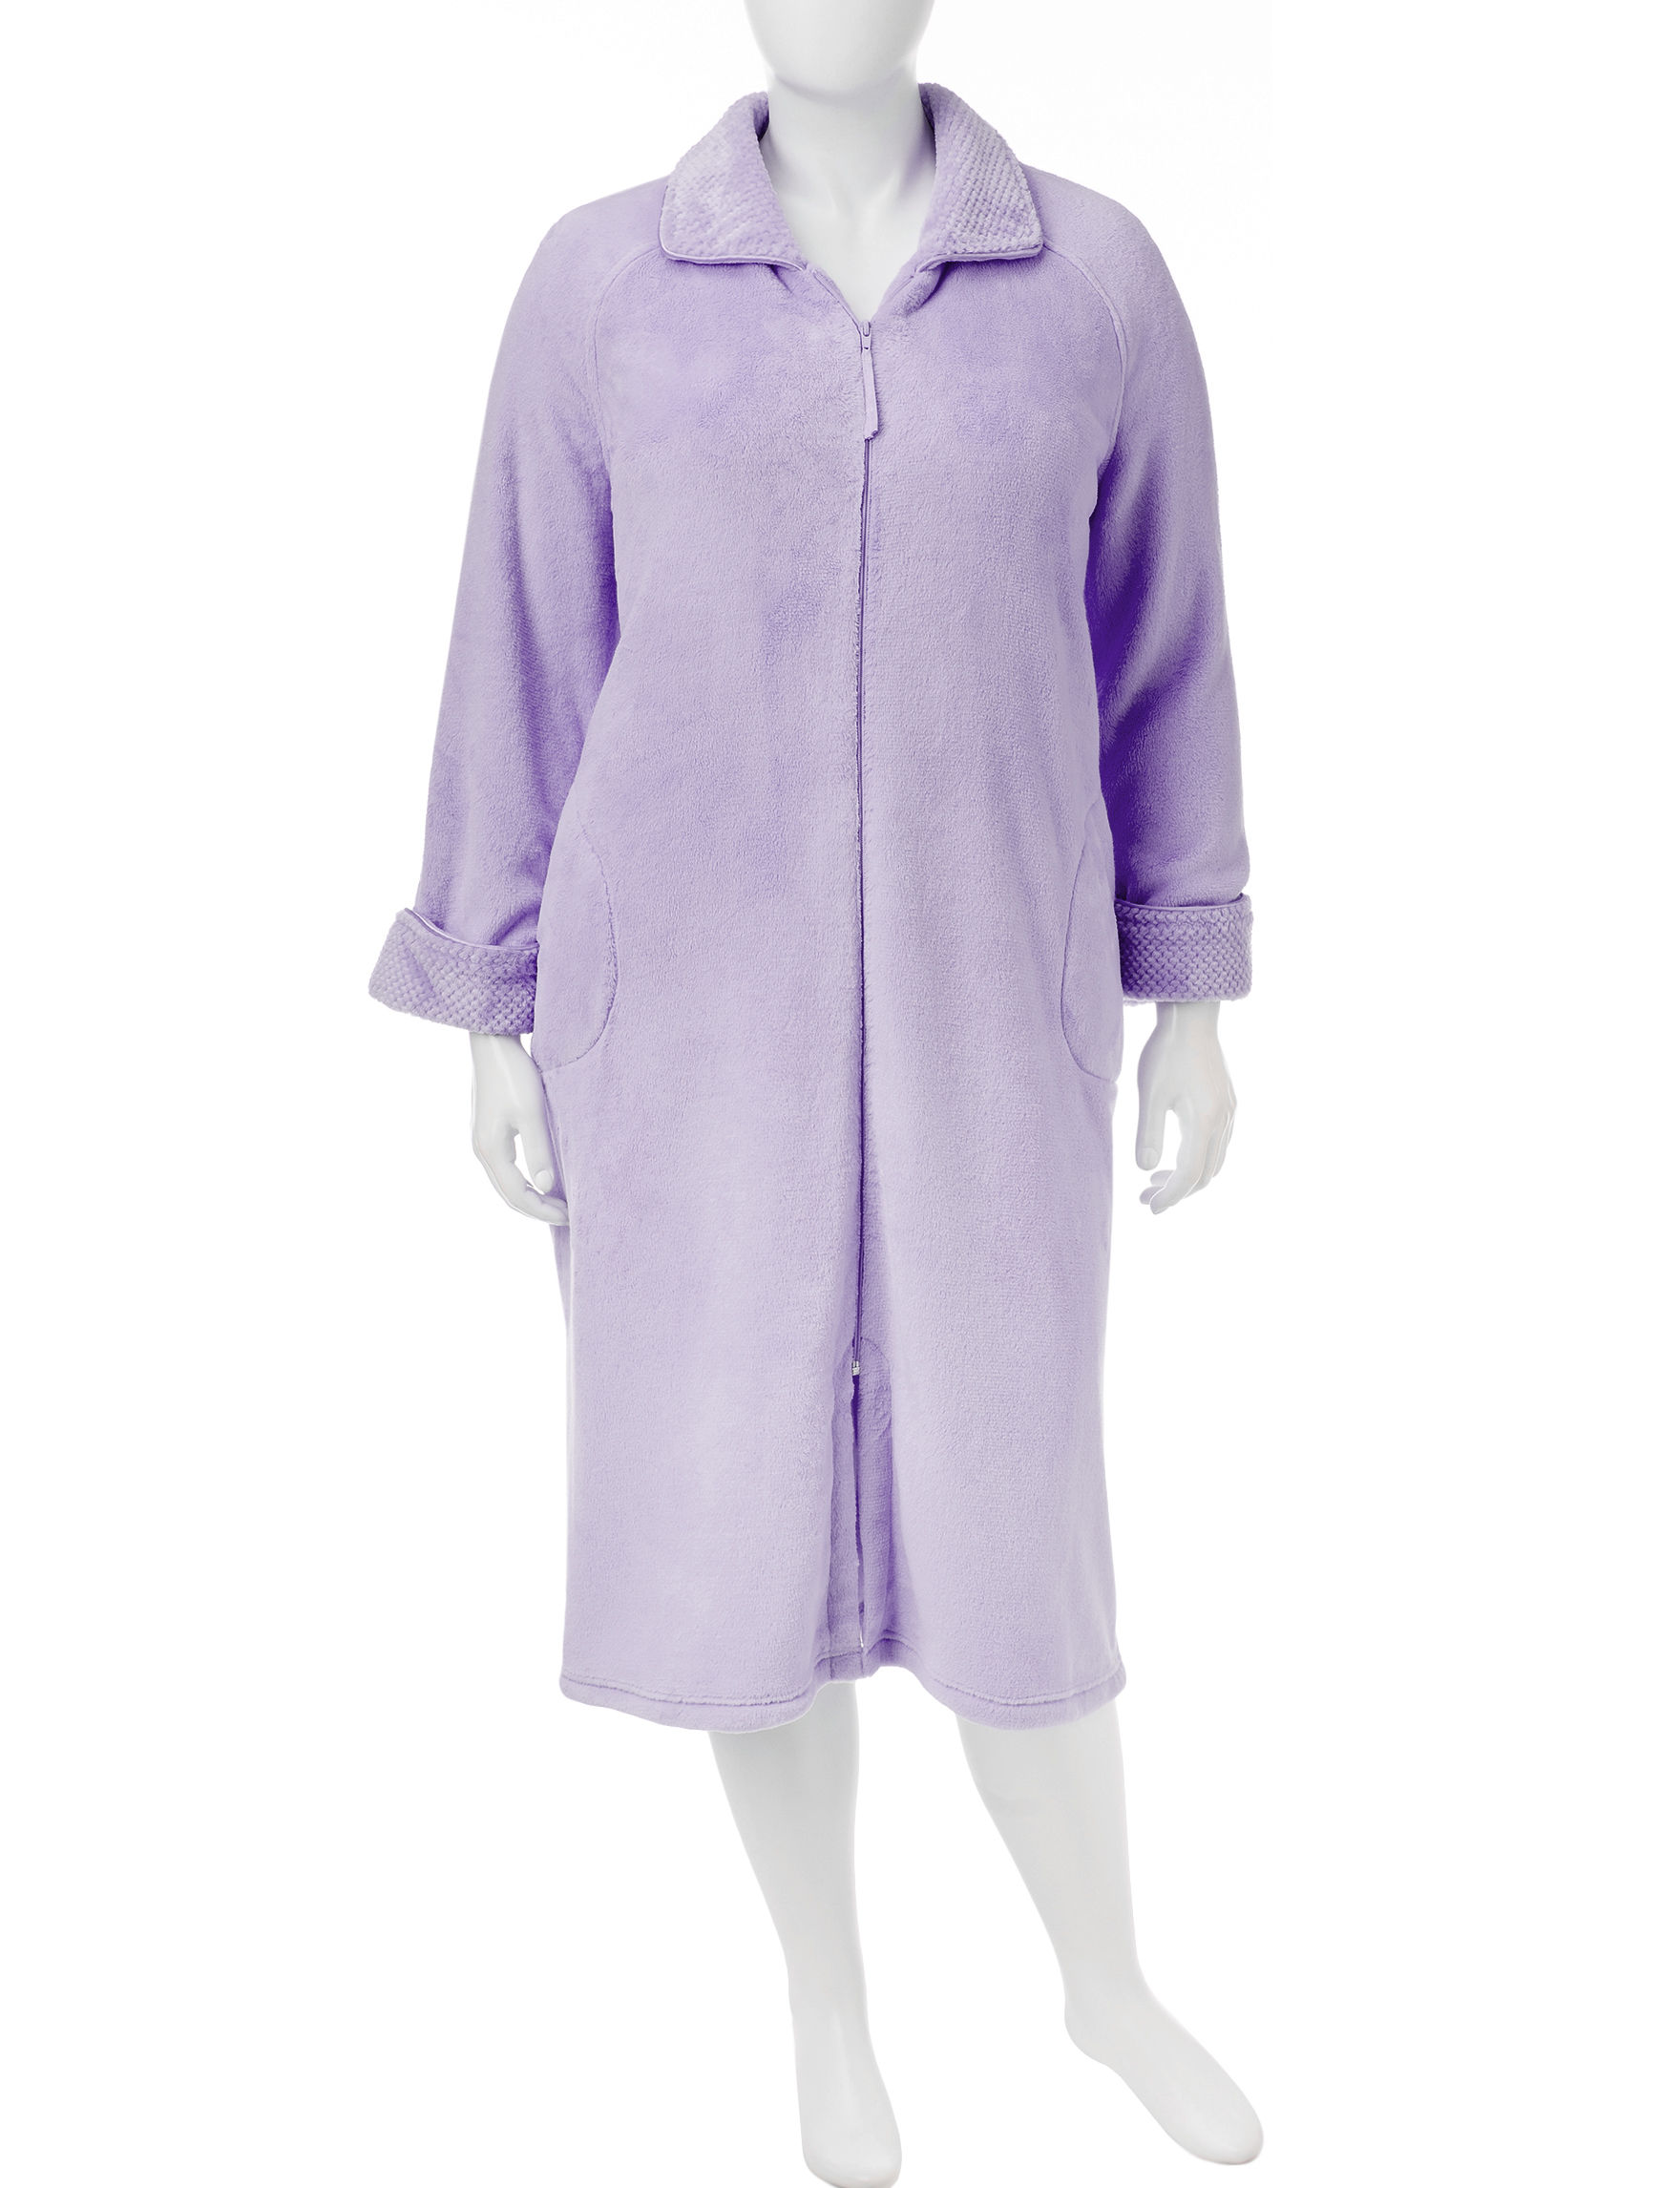 Rebecca Malone Lavender Robes, Wraps & Dusters